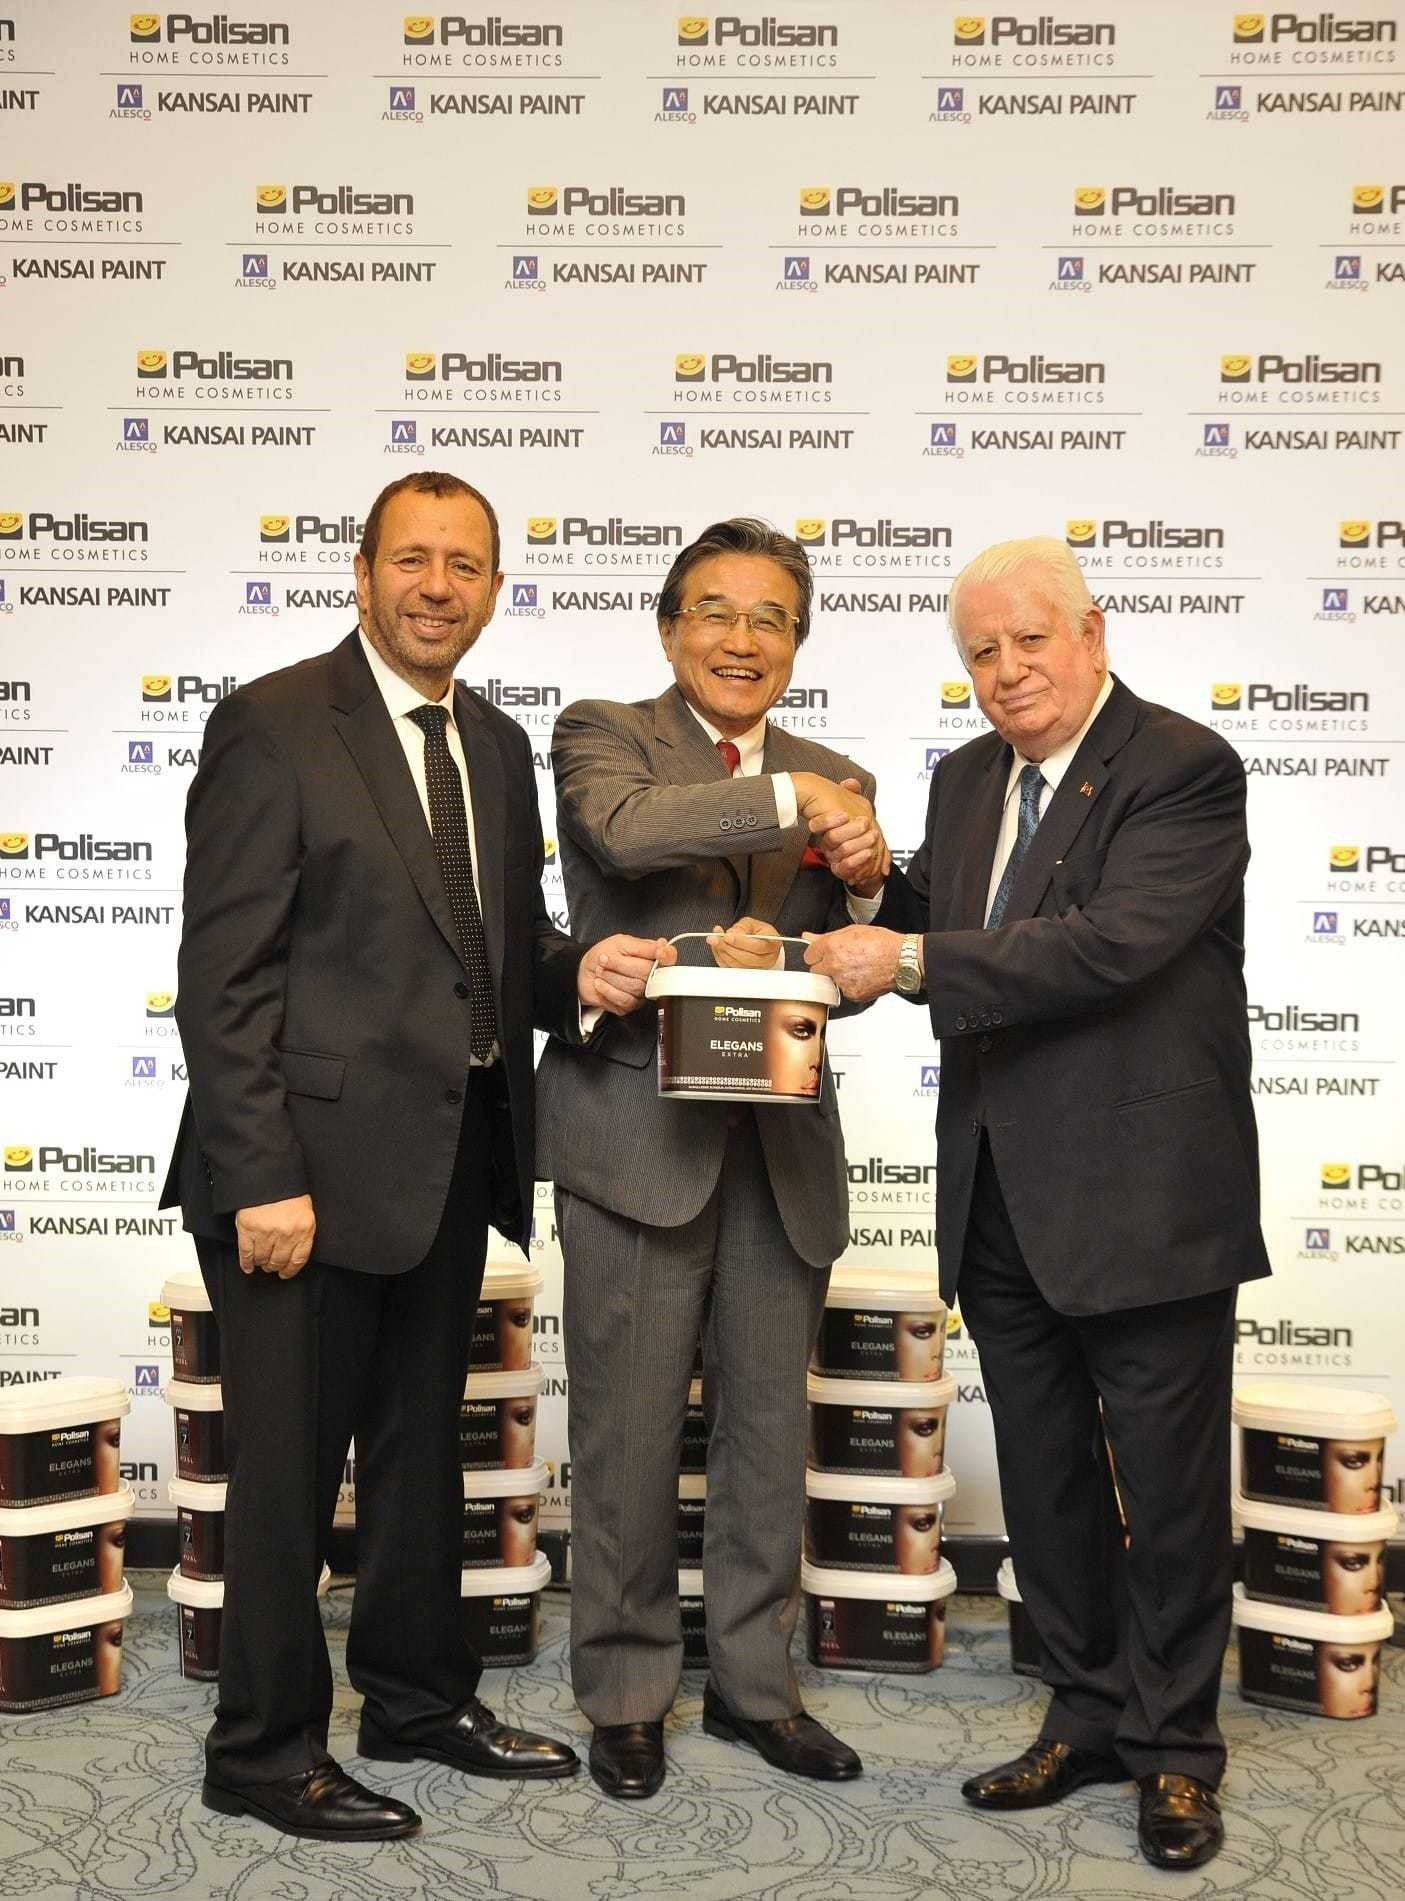 CEO of Polisan Holding Erol Mizrahi (L), Kansai Paint President Hiroshi Ishino (C) and Chairman of the Board of Polisan Holding Necmettin Bitlis (R) celebrates the new deal signed as Kansai Paint took over 50 percent of Polisan shares.